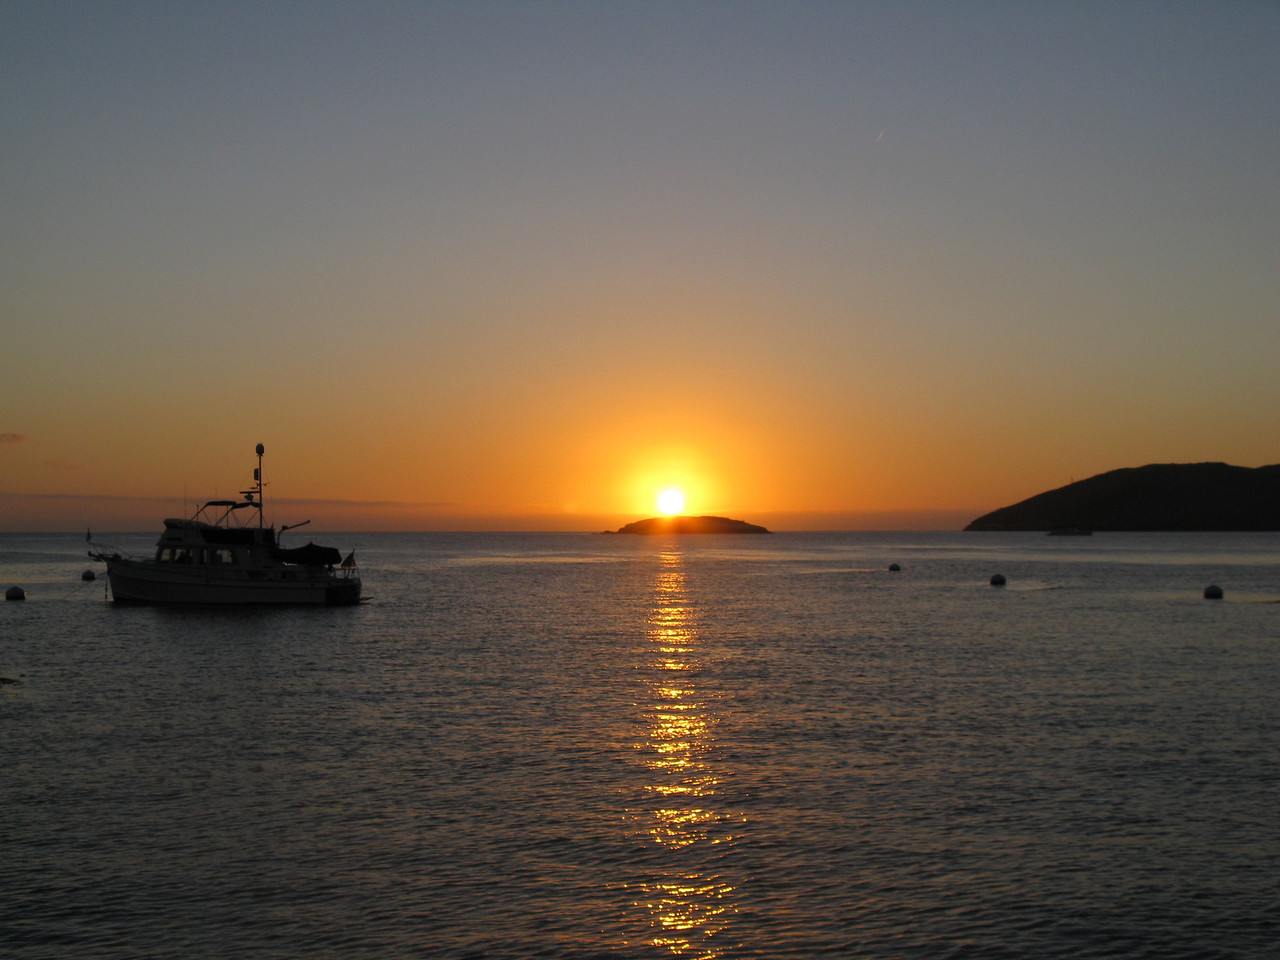 Sunrise in Cherry Cove on Catalina Island, California. Taken on Sept. 19, 2009 with a Canon A720IS point and shoot.